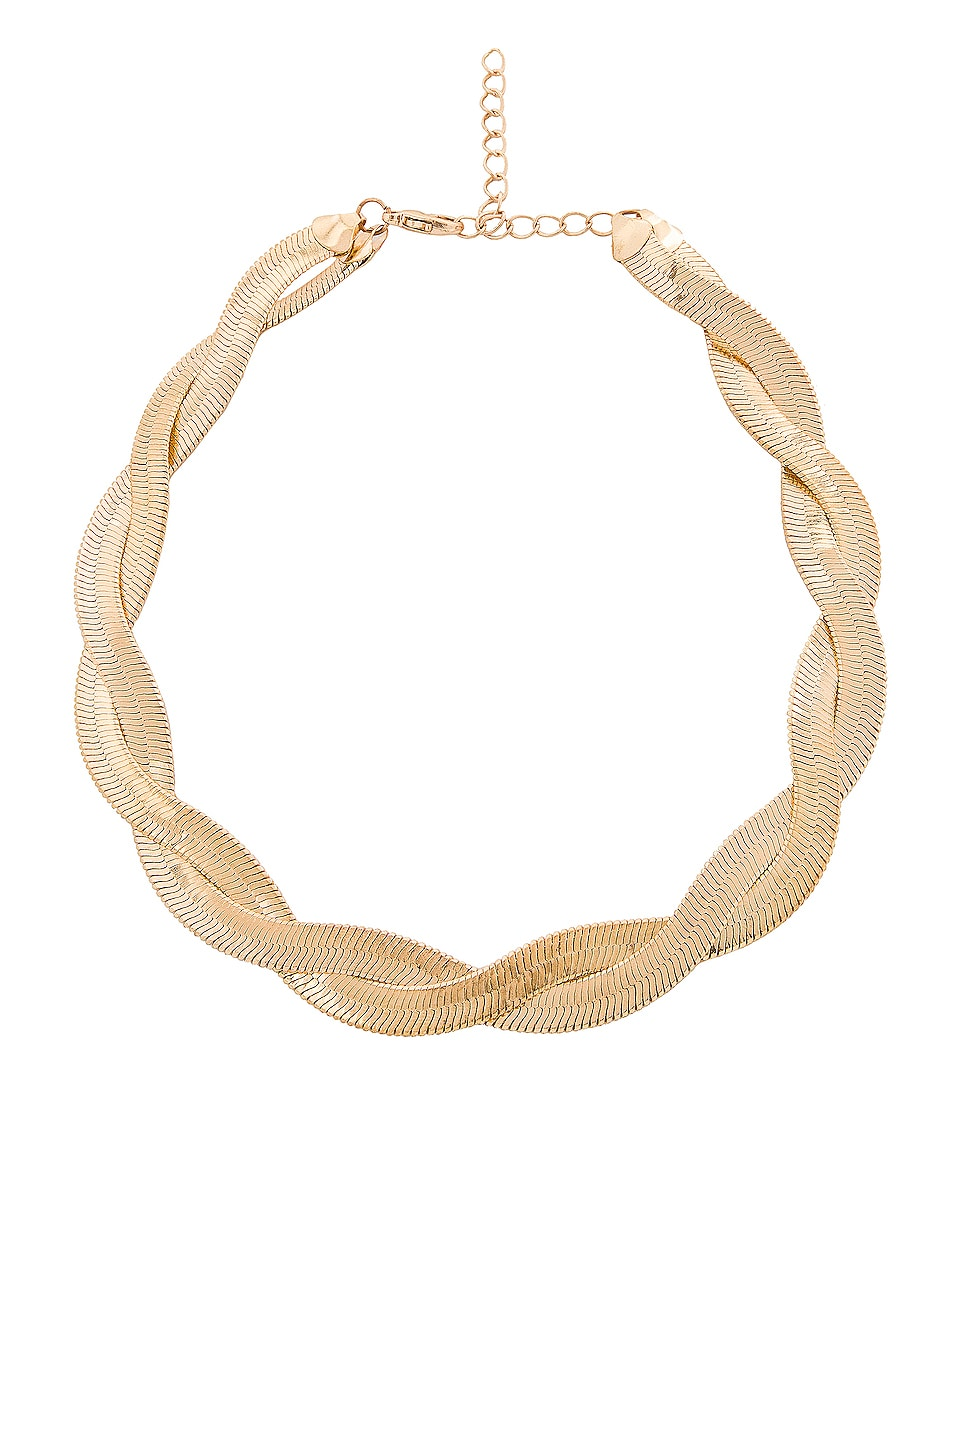 EIGHT by GJENMI JEWELRY Braid Me Up Choker in Gold